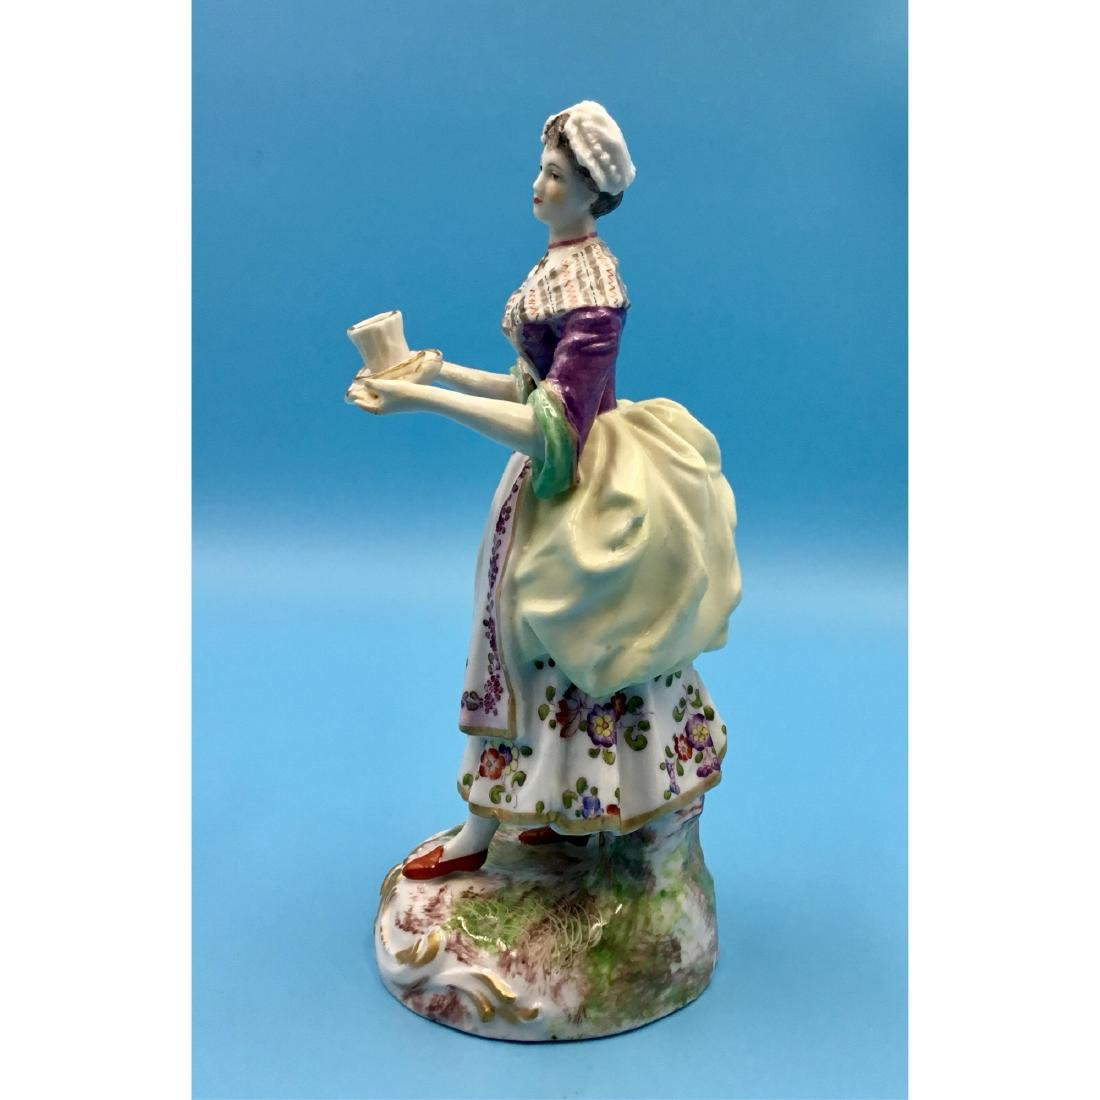 ACHILLE BLOCH FRENCH PORCELAIN FIGURINE - 2